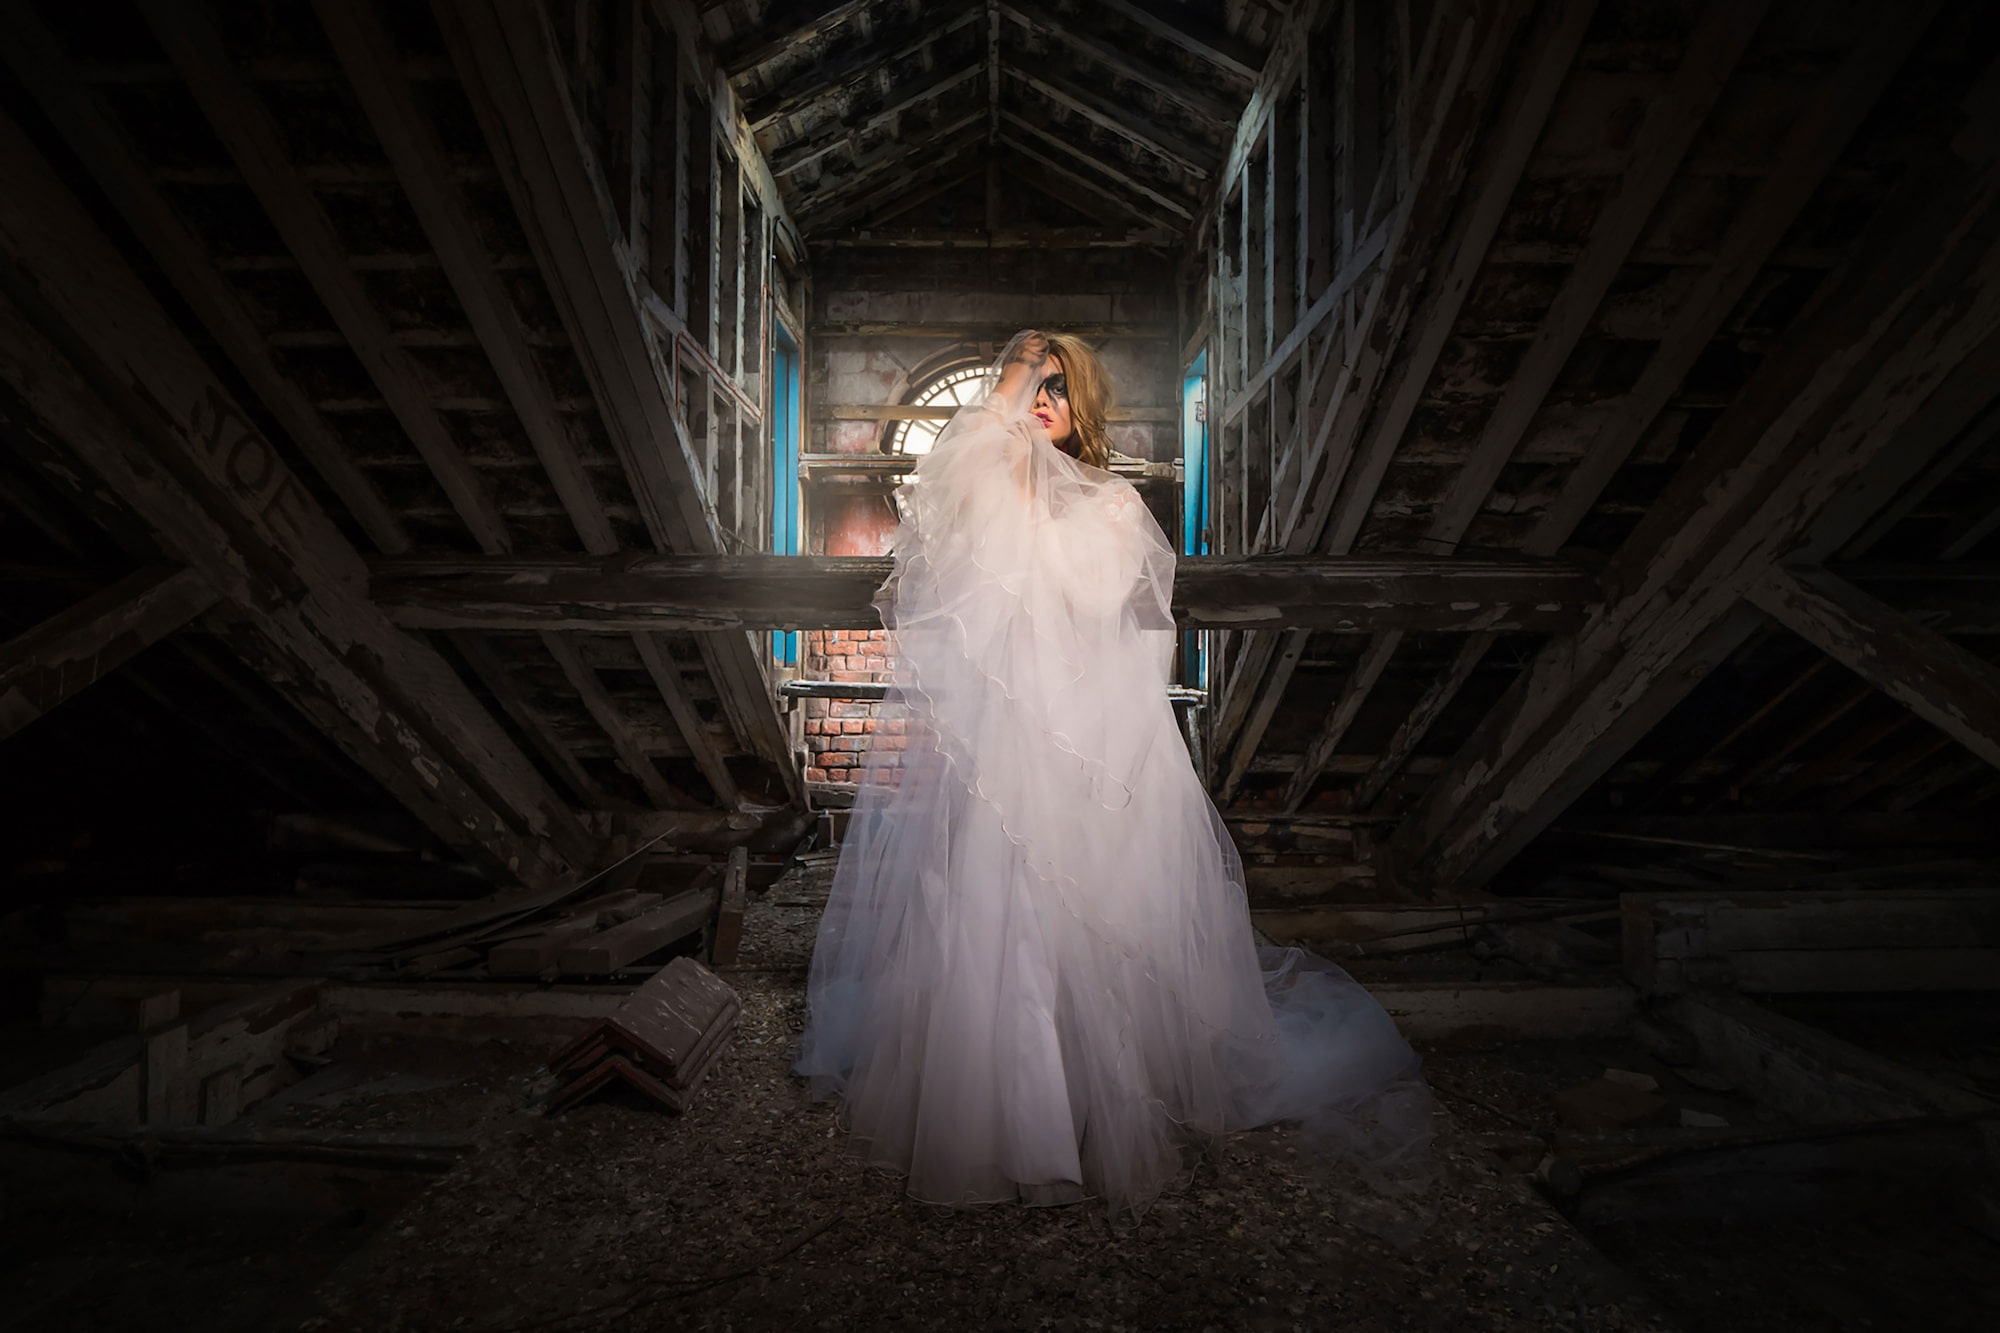 terry donnelly sony alpha 9 wideangle portrait o a lady wearing a wedding dress standing in a barn